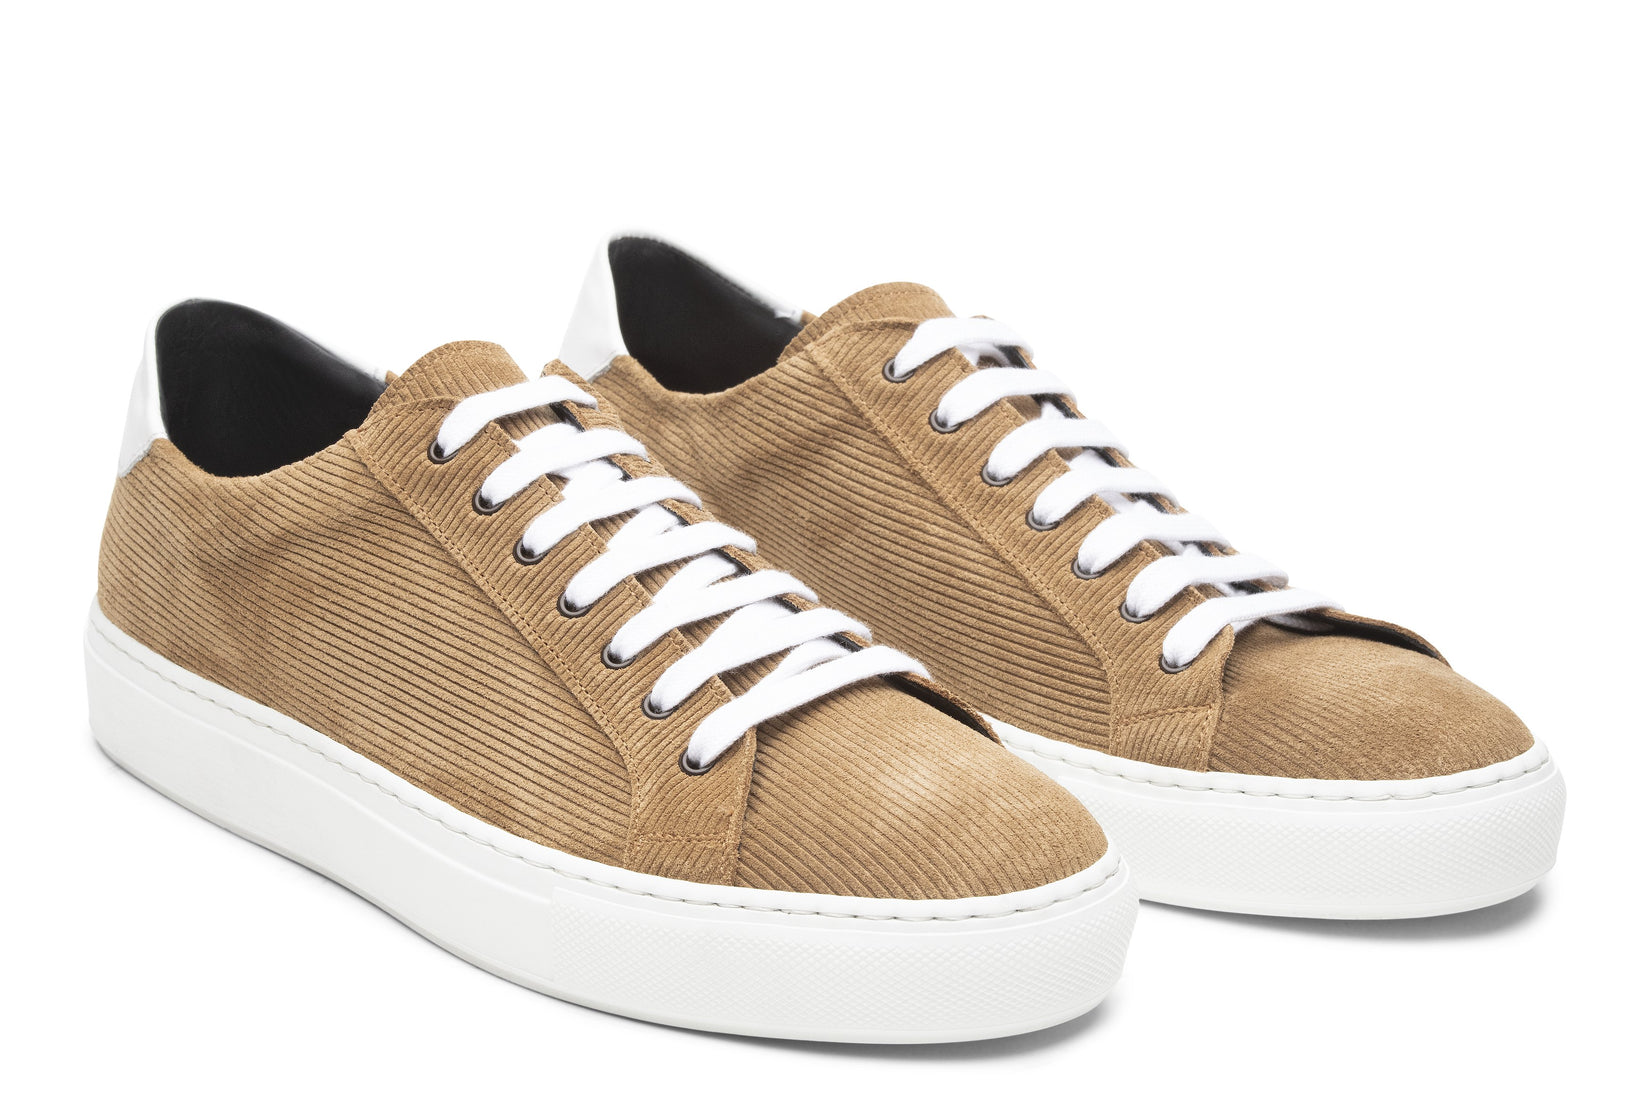 Saturday Lace-Up Sneaker in Caramel